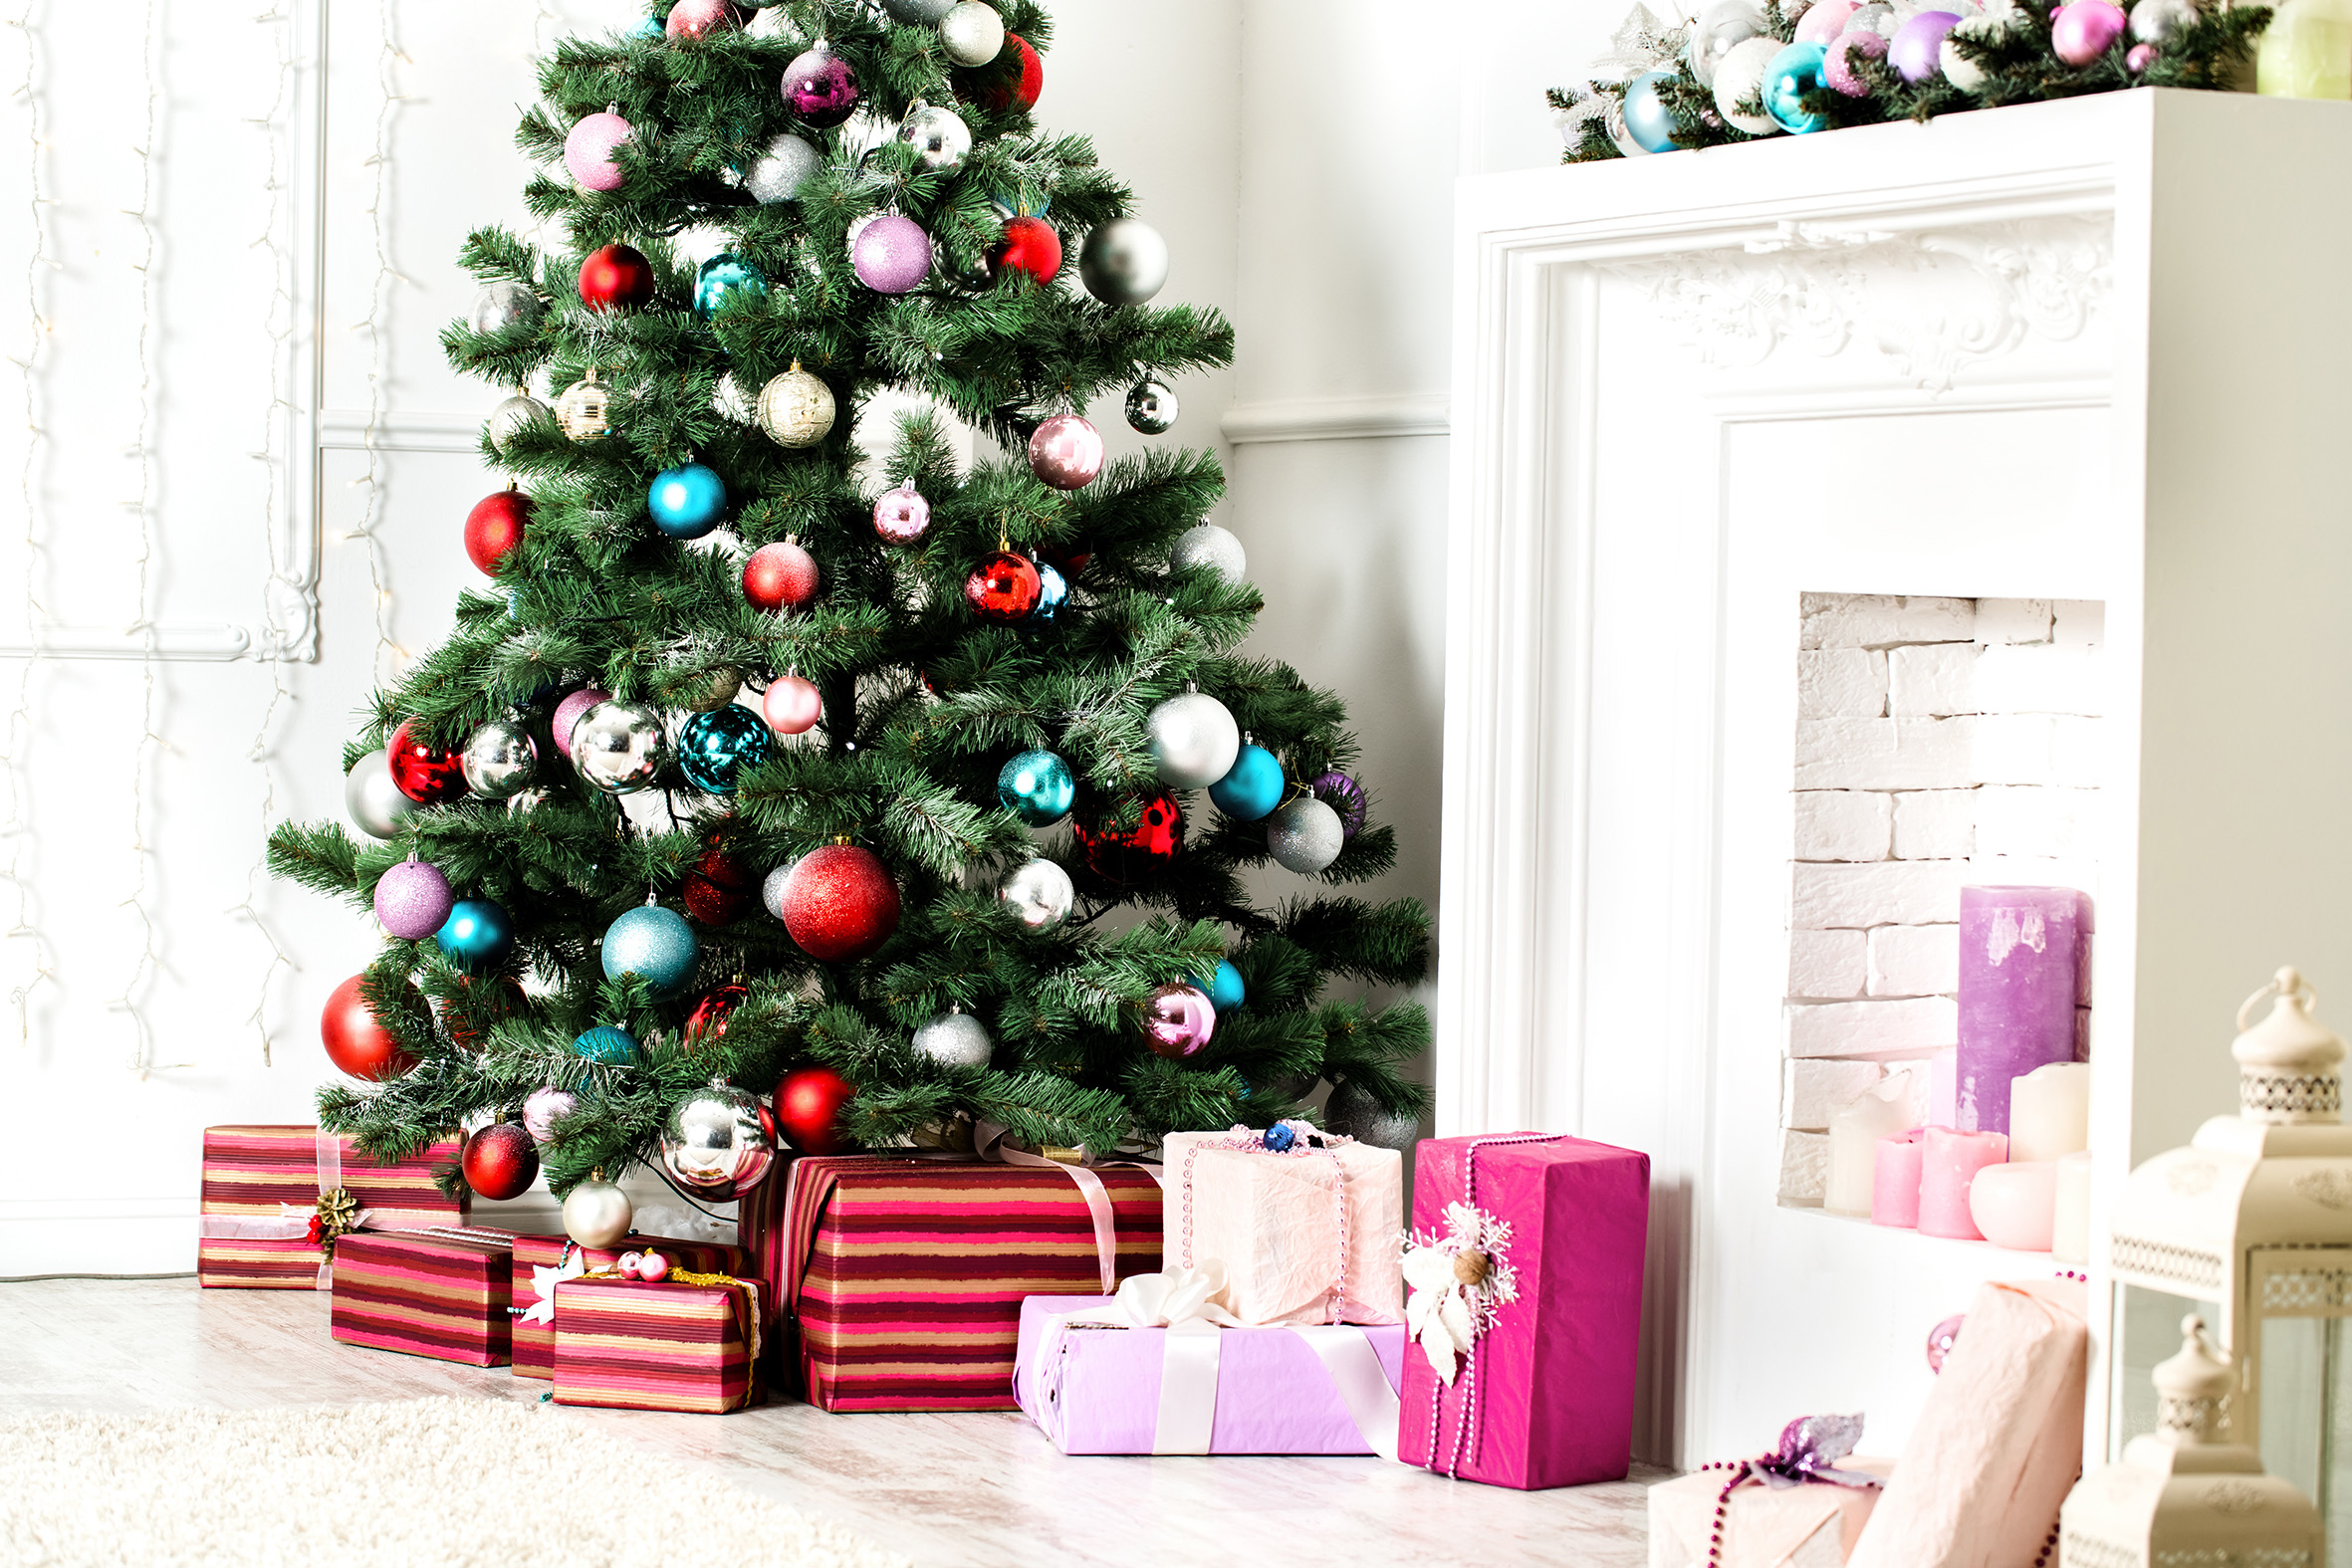 WIN a £25 voucher with our Christmas Tree Competition